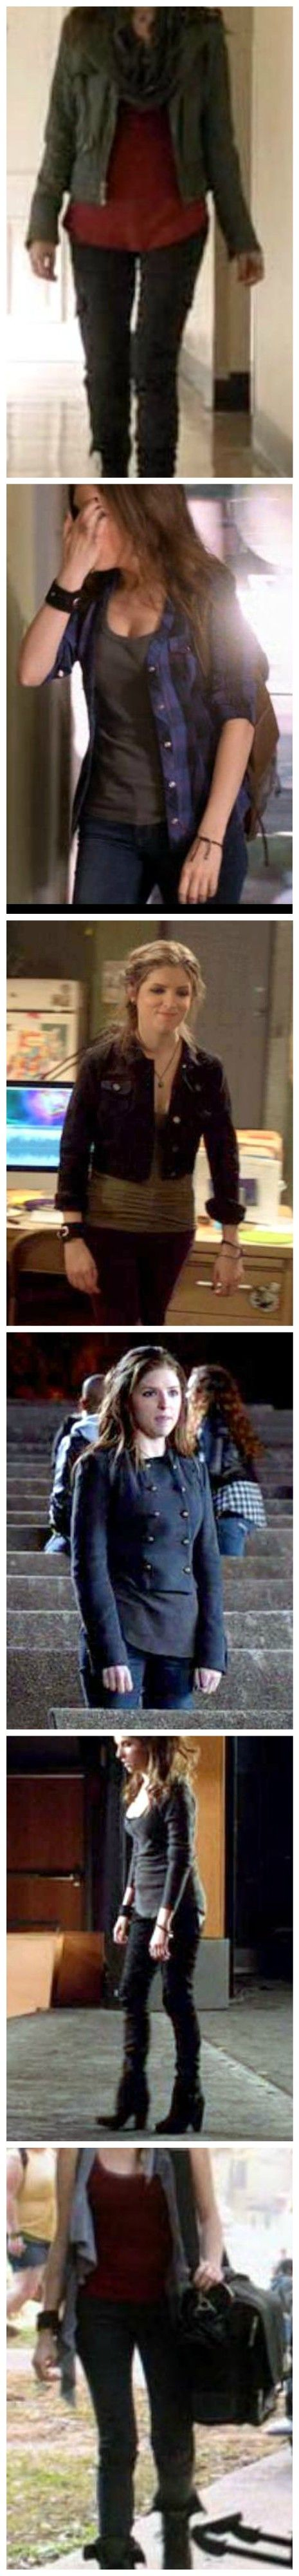 Anna Kendrick -Beca Mitchell - Pitch Perfect